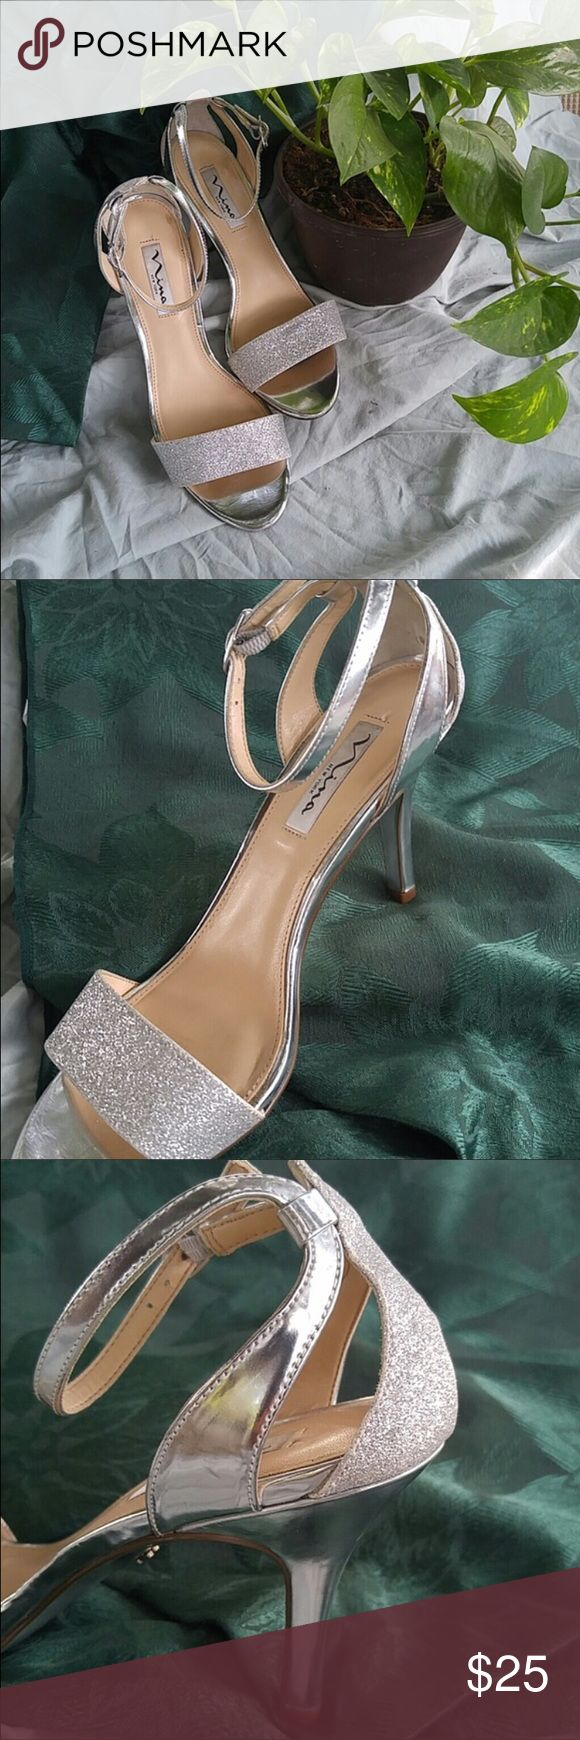 Silver strappy heels RESALE! Silver strappy heels that I bought for a winter wedding. Will not wear again any time soon. In very good condition and pretty comfortable for heels. Shoes Heels